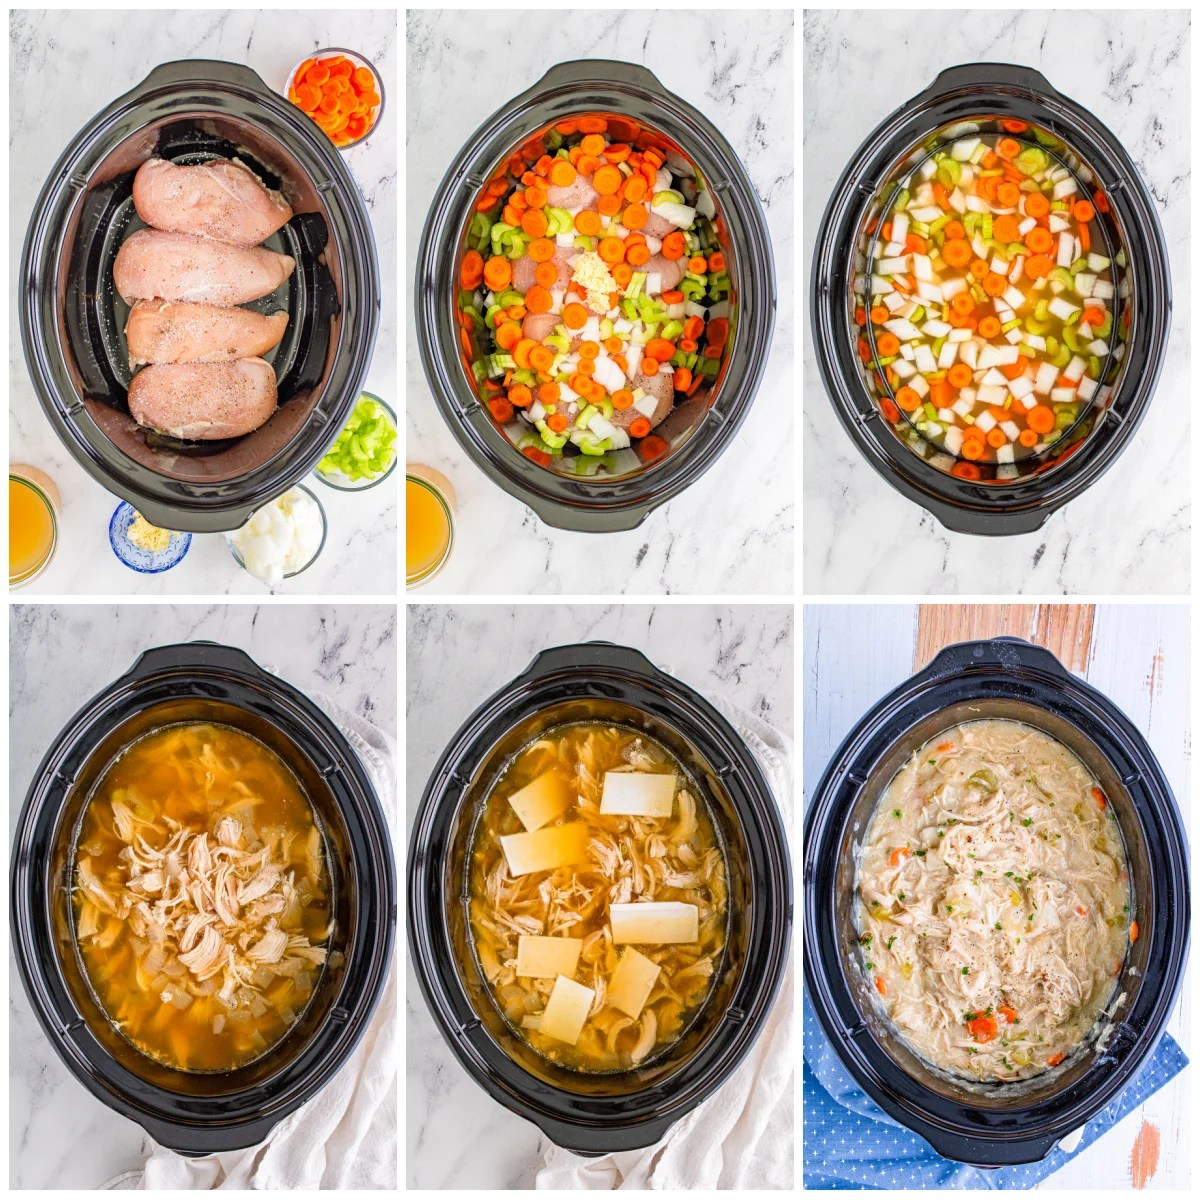 Step by step photos on how to make Slow Cooker Chicken and Dumplings